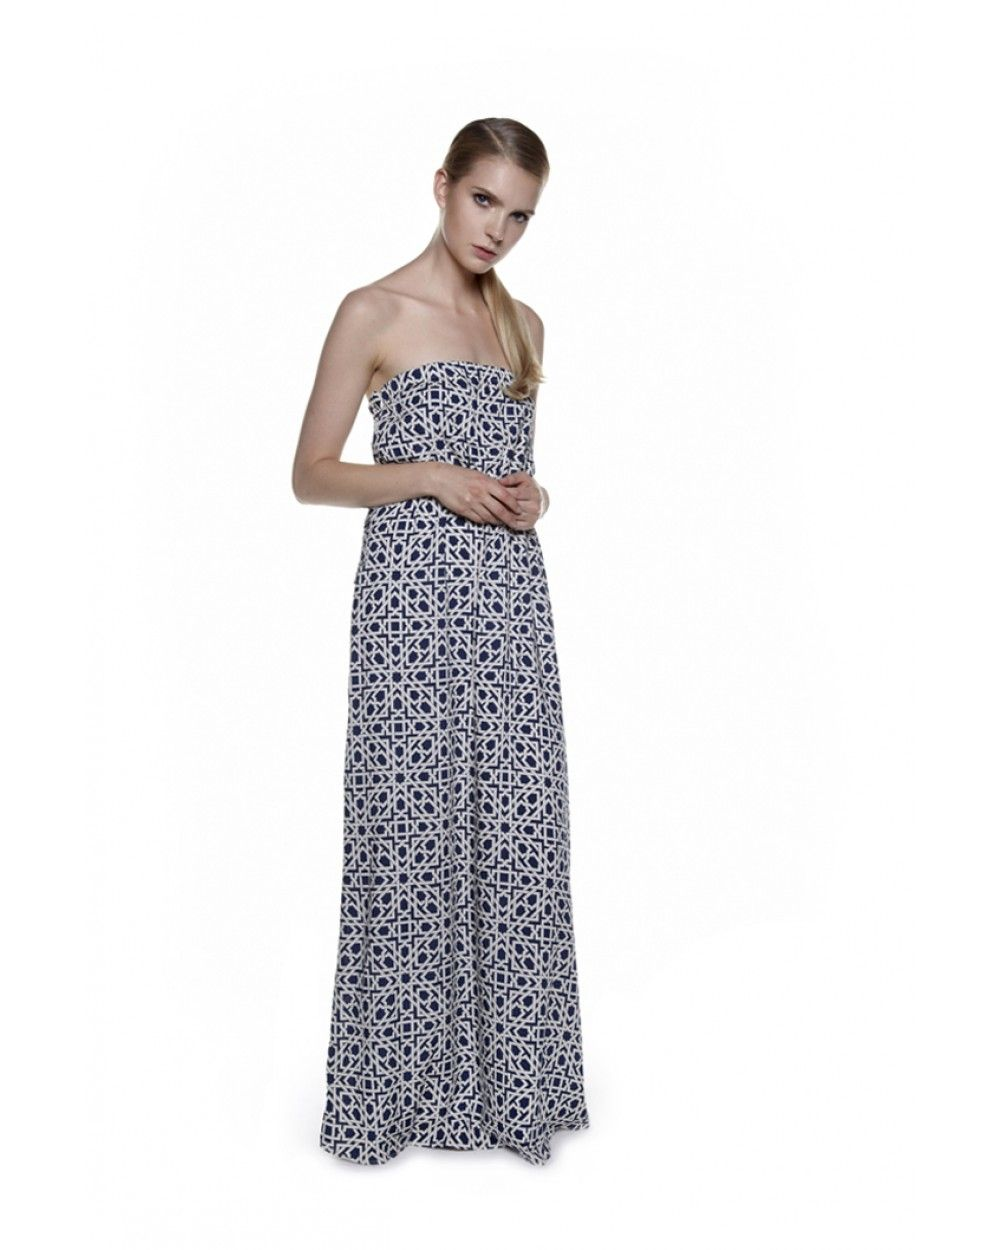 Have a look at this beautiful dress inspired in the arabian